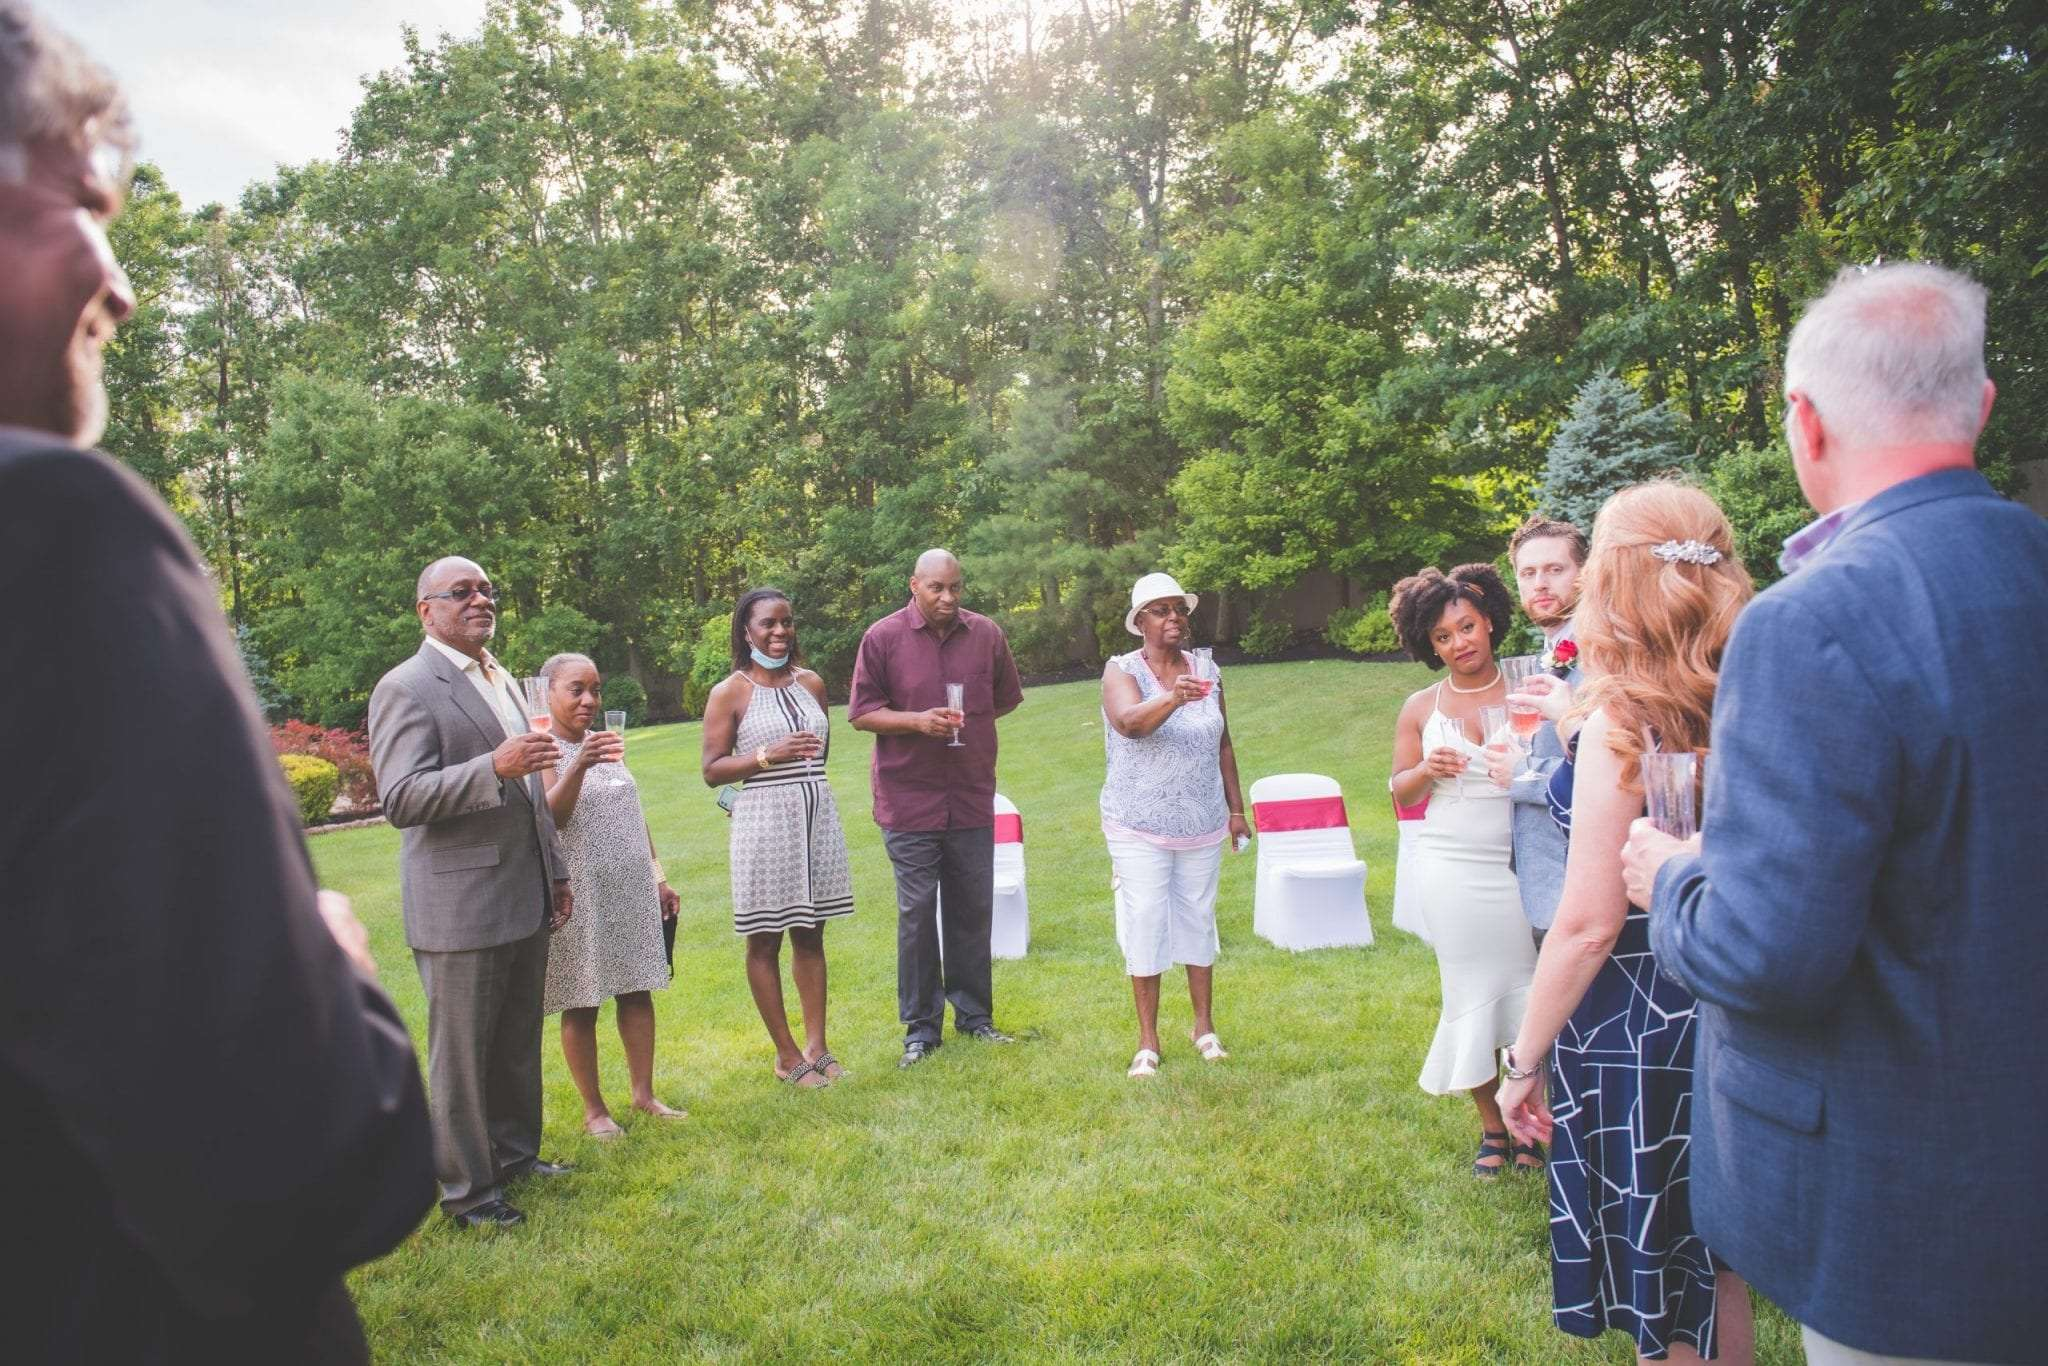 How to have a backyard wedding with social distancing